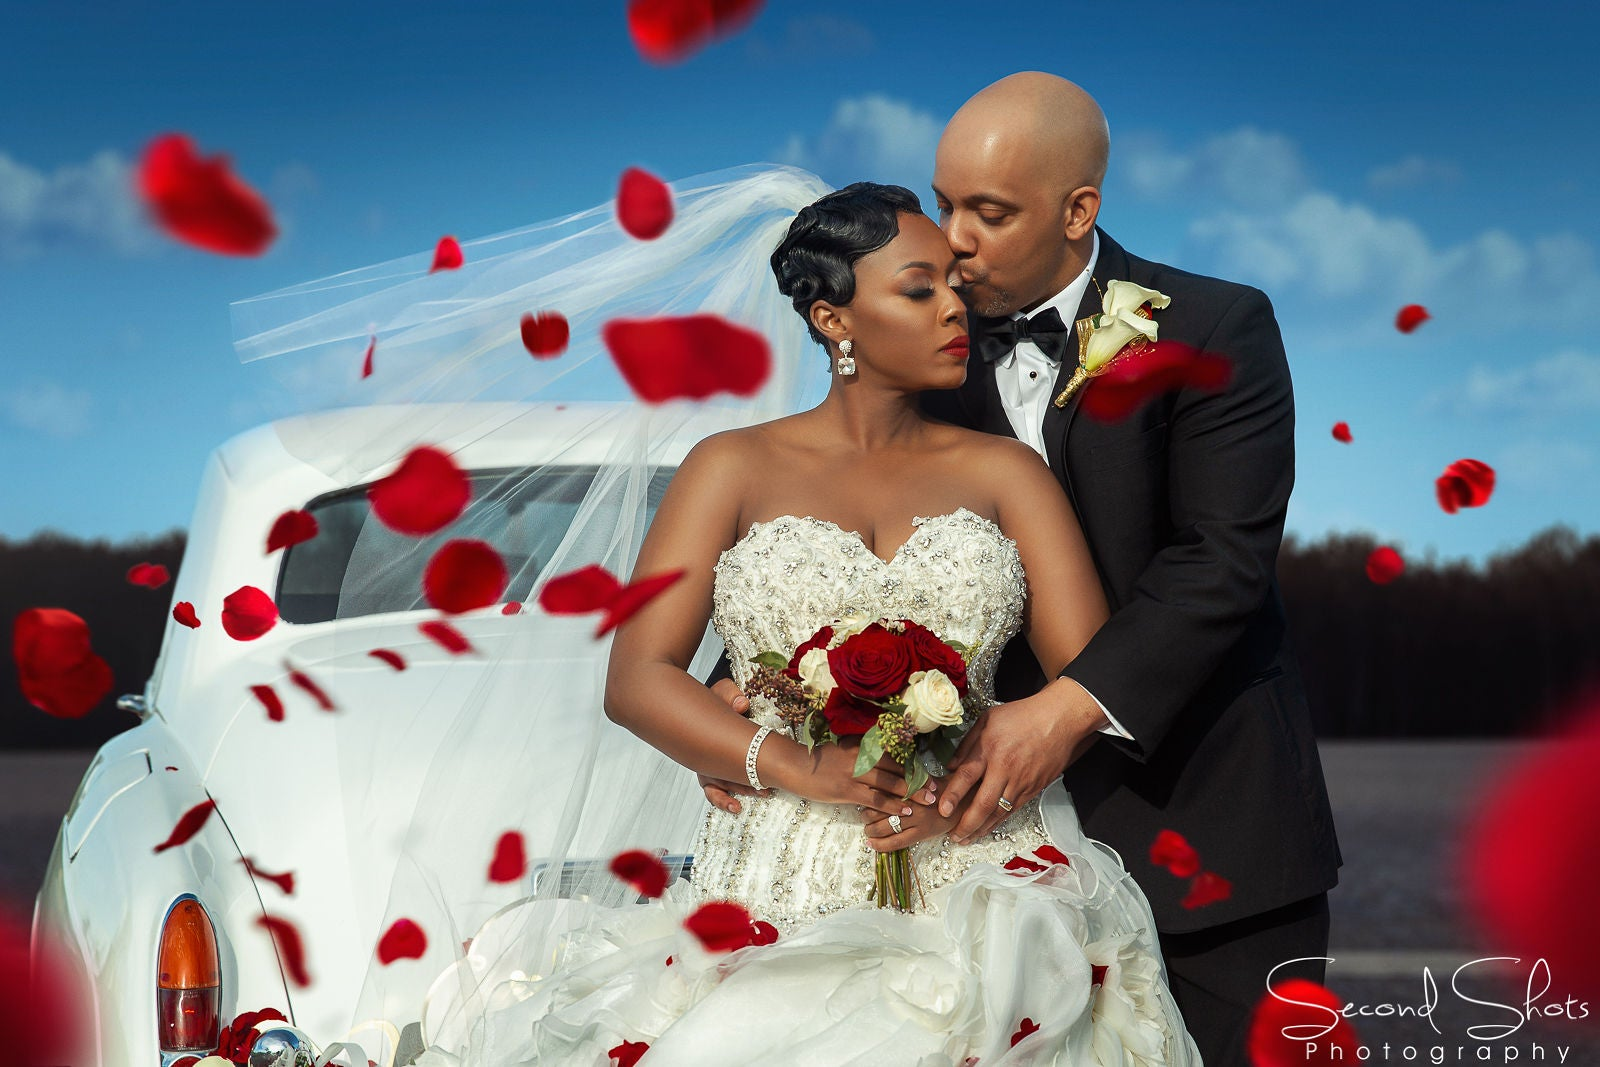 Bridal Bliss: The Roses Were Oh-So-Red At Krystal And Billy's Romantic Texas Wedding